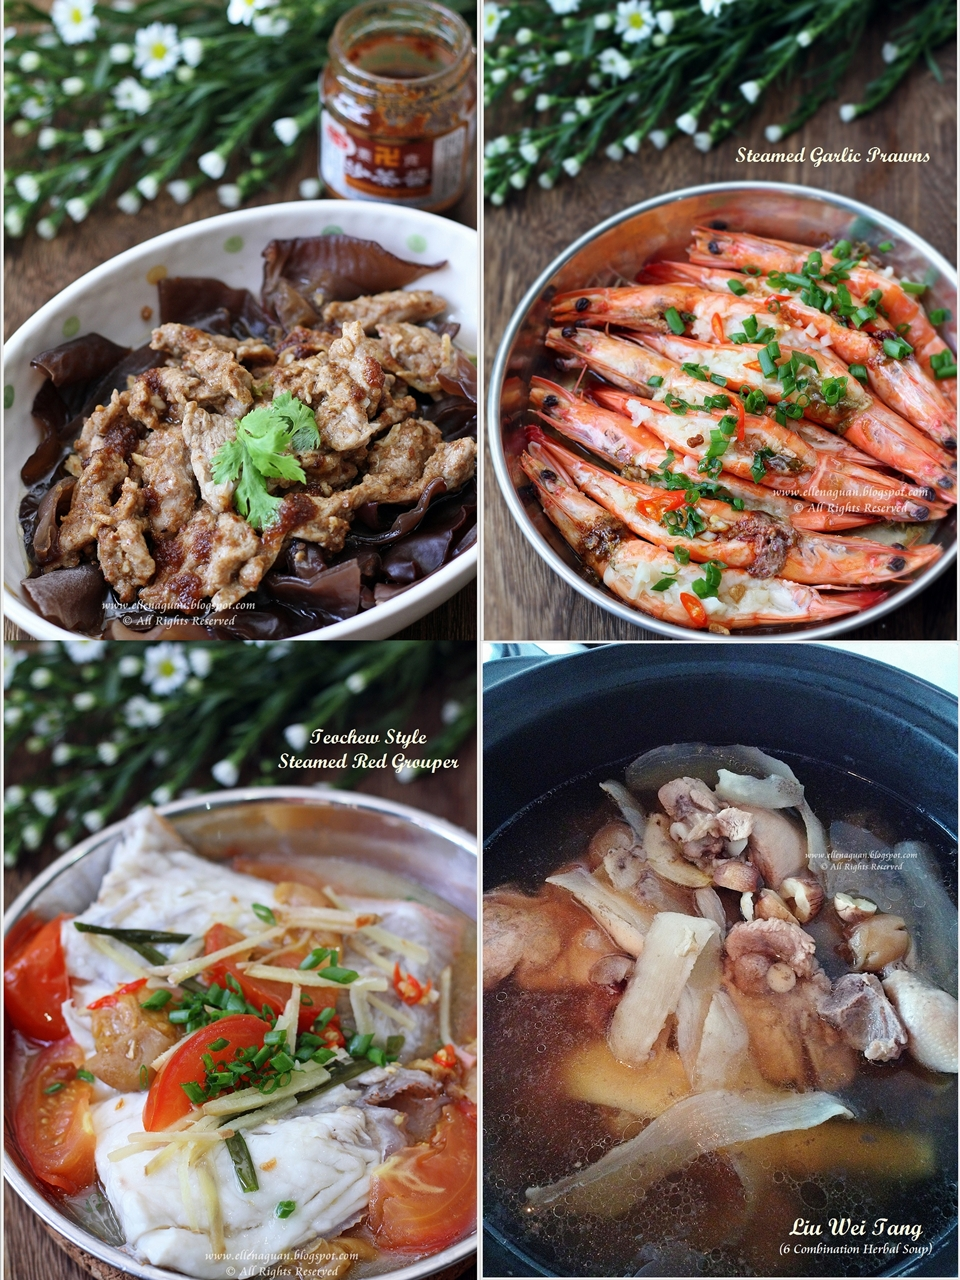 Cuisine paradise singapore food blog recipes reviews and travel quick recipes on 3 dishes 1 soup forumfinder